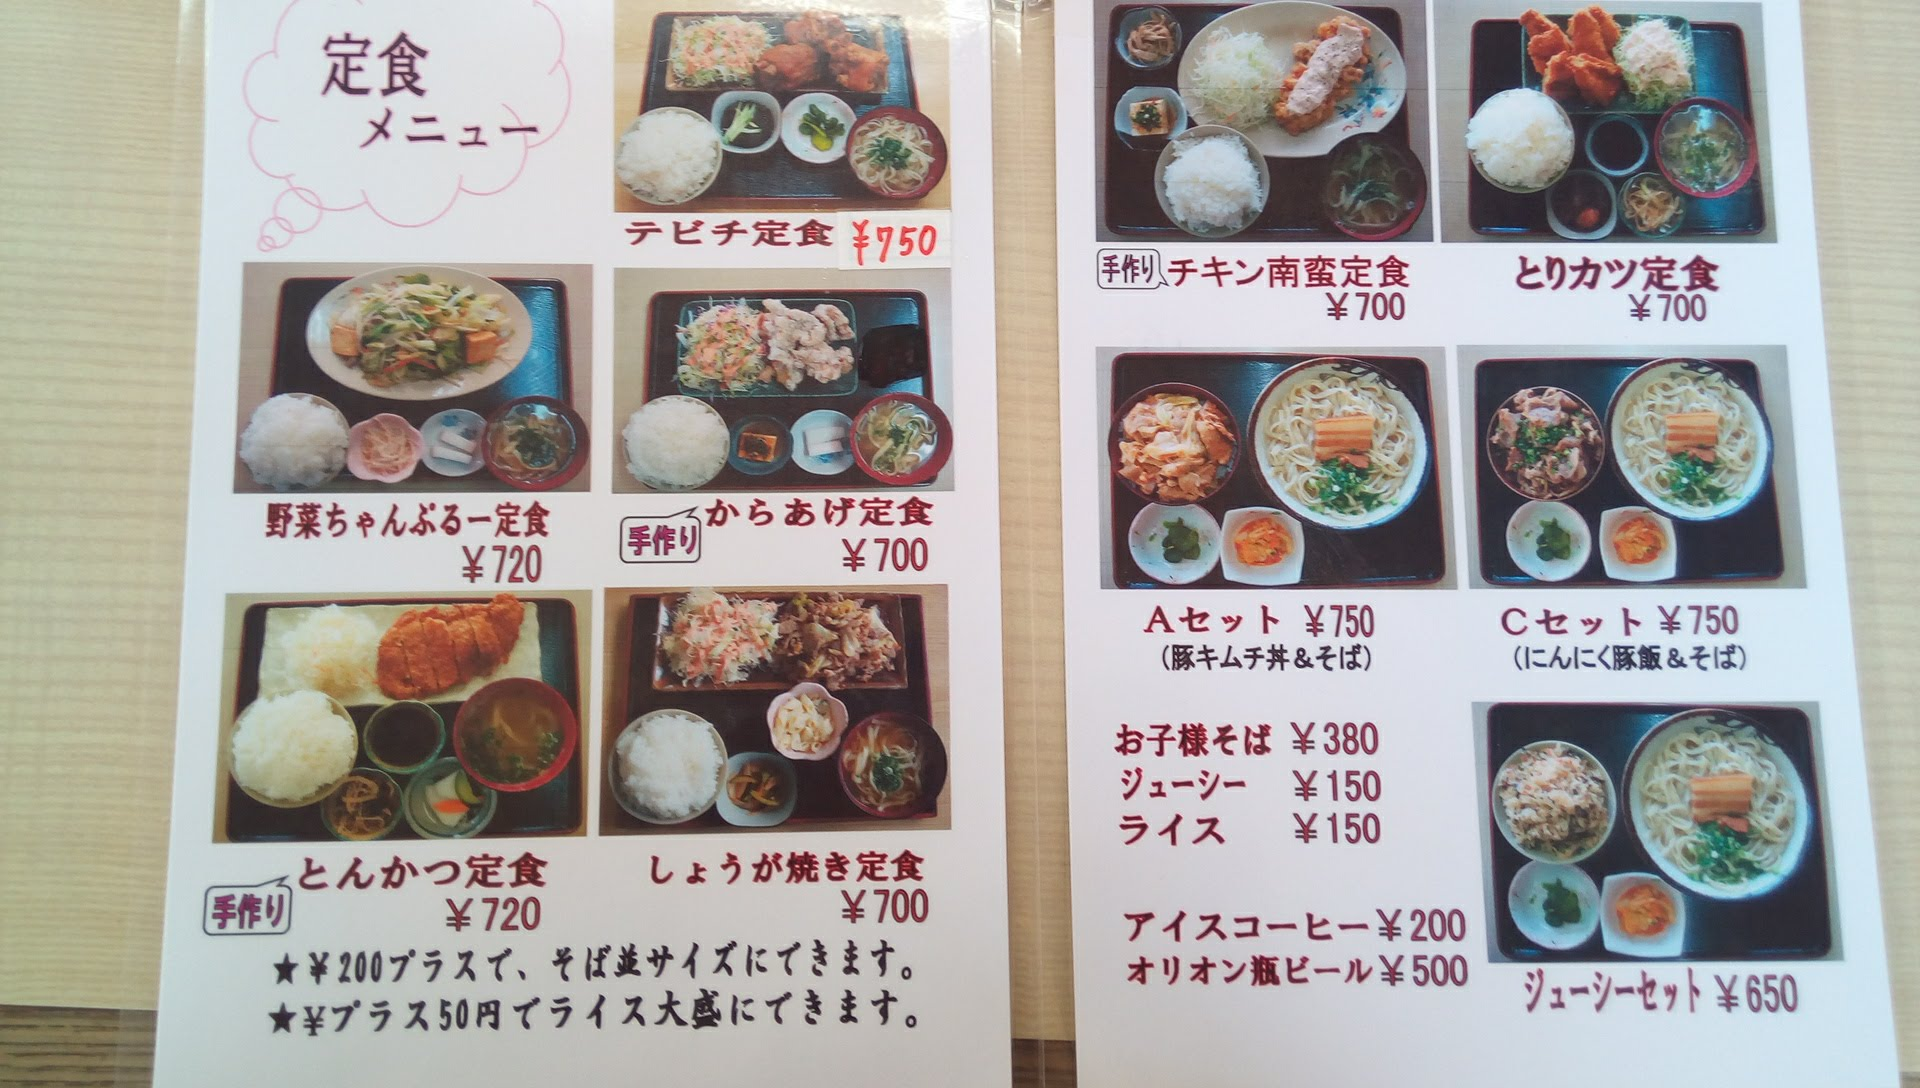 Set menu of Marutaka soba